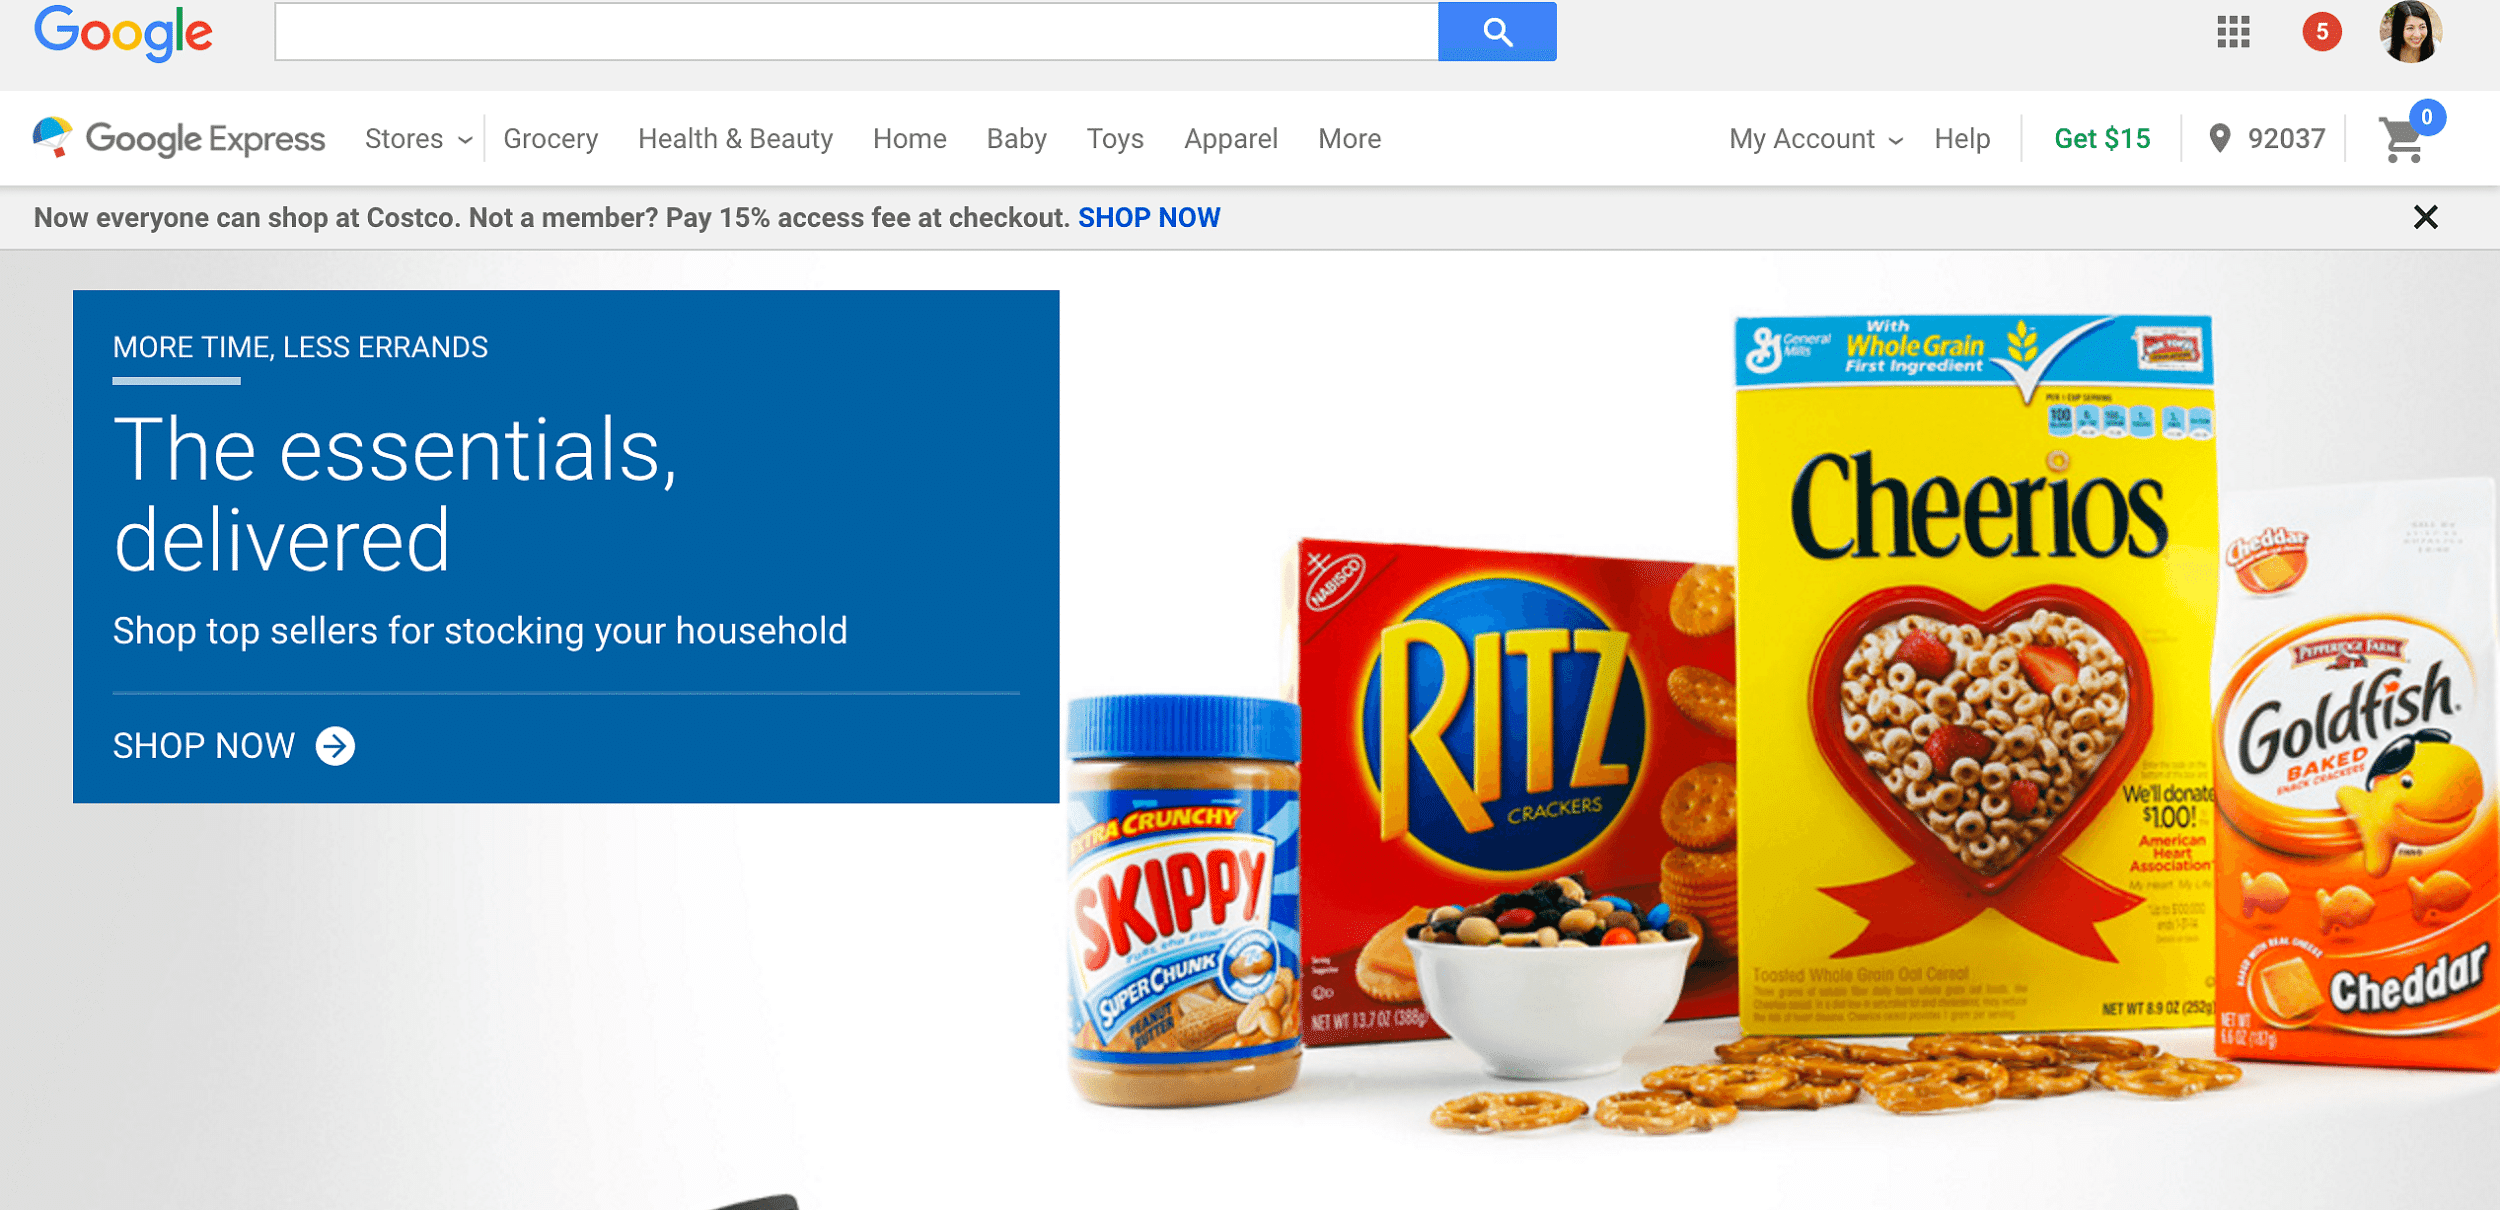 The Google Express interface